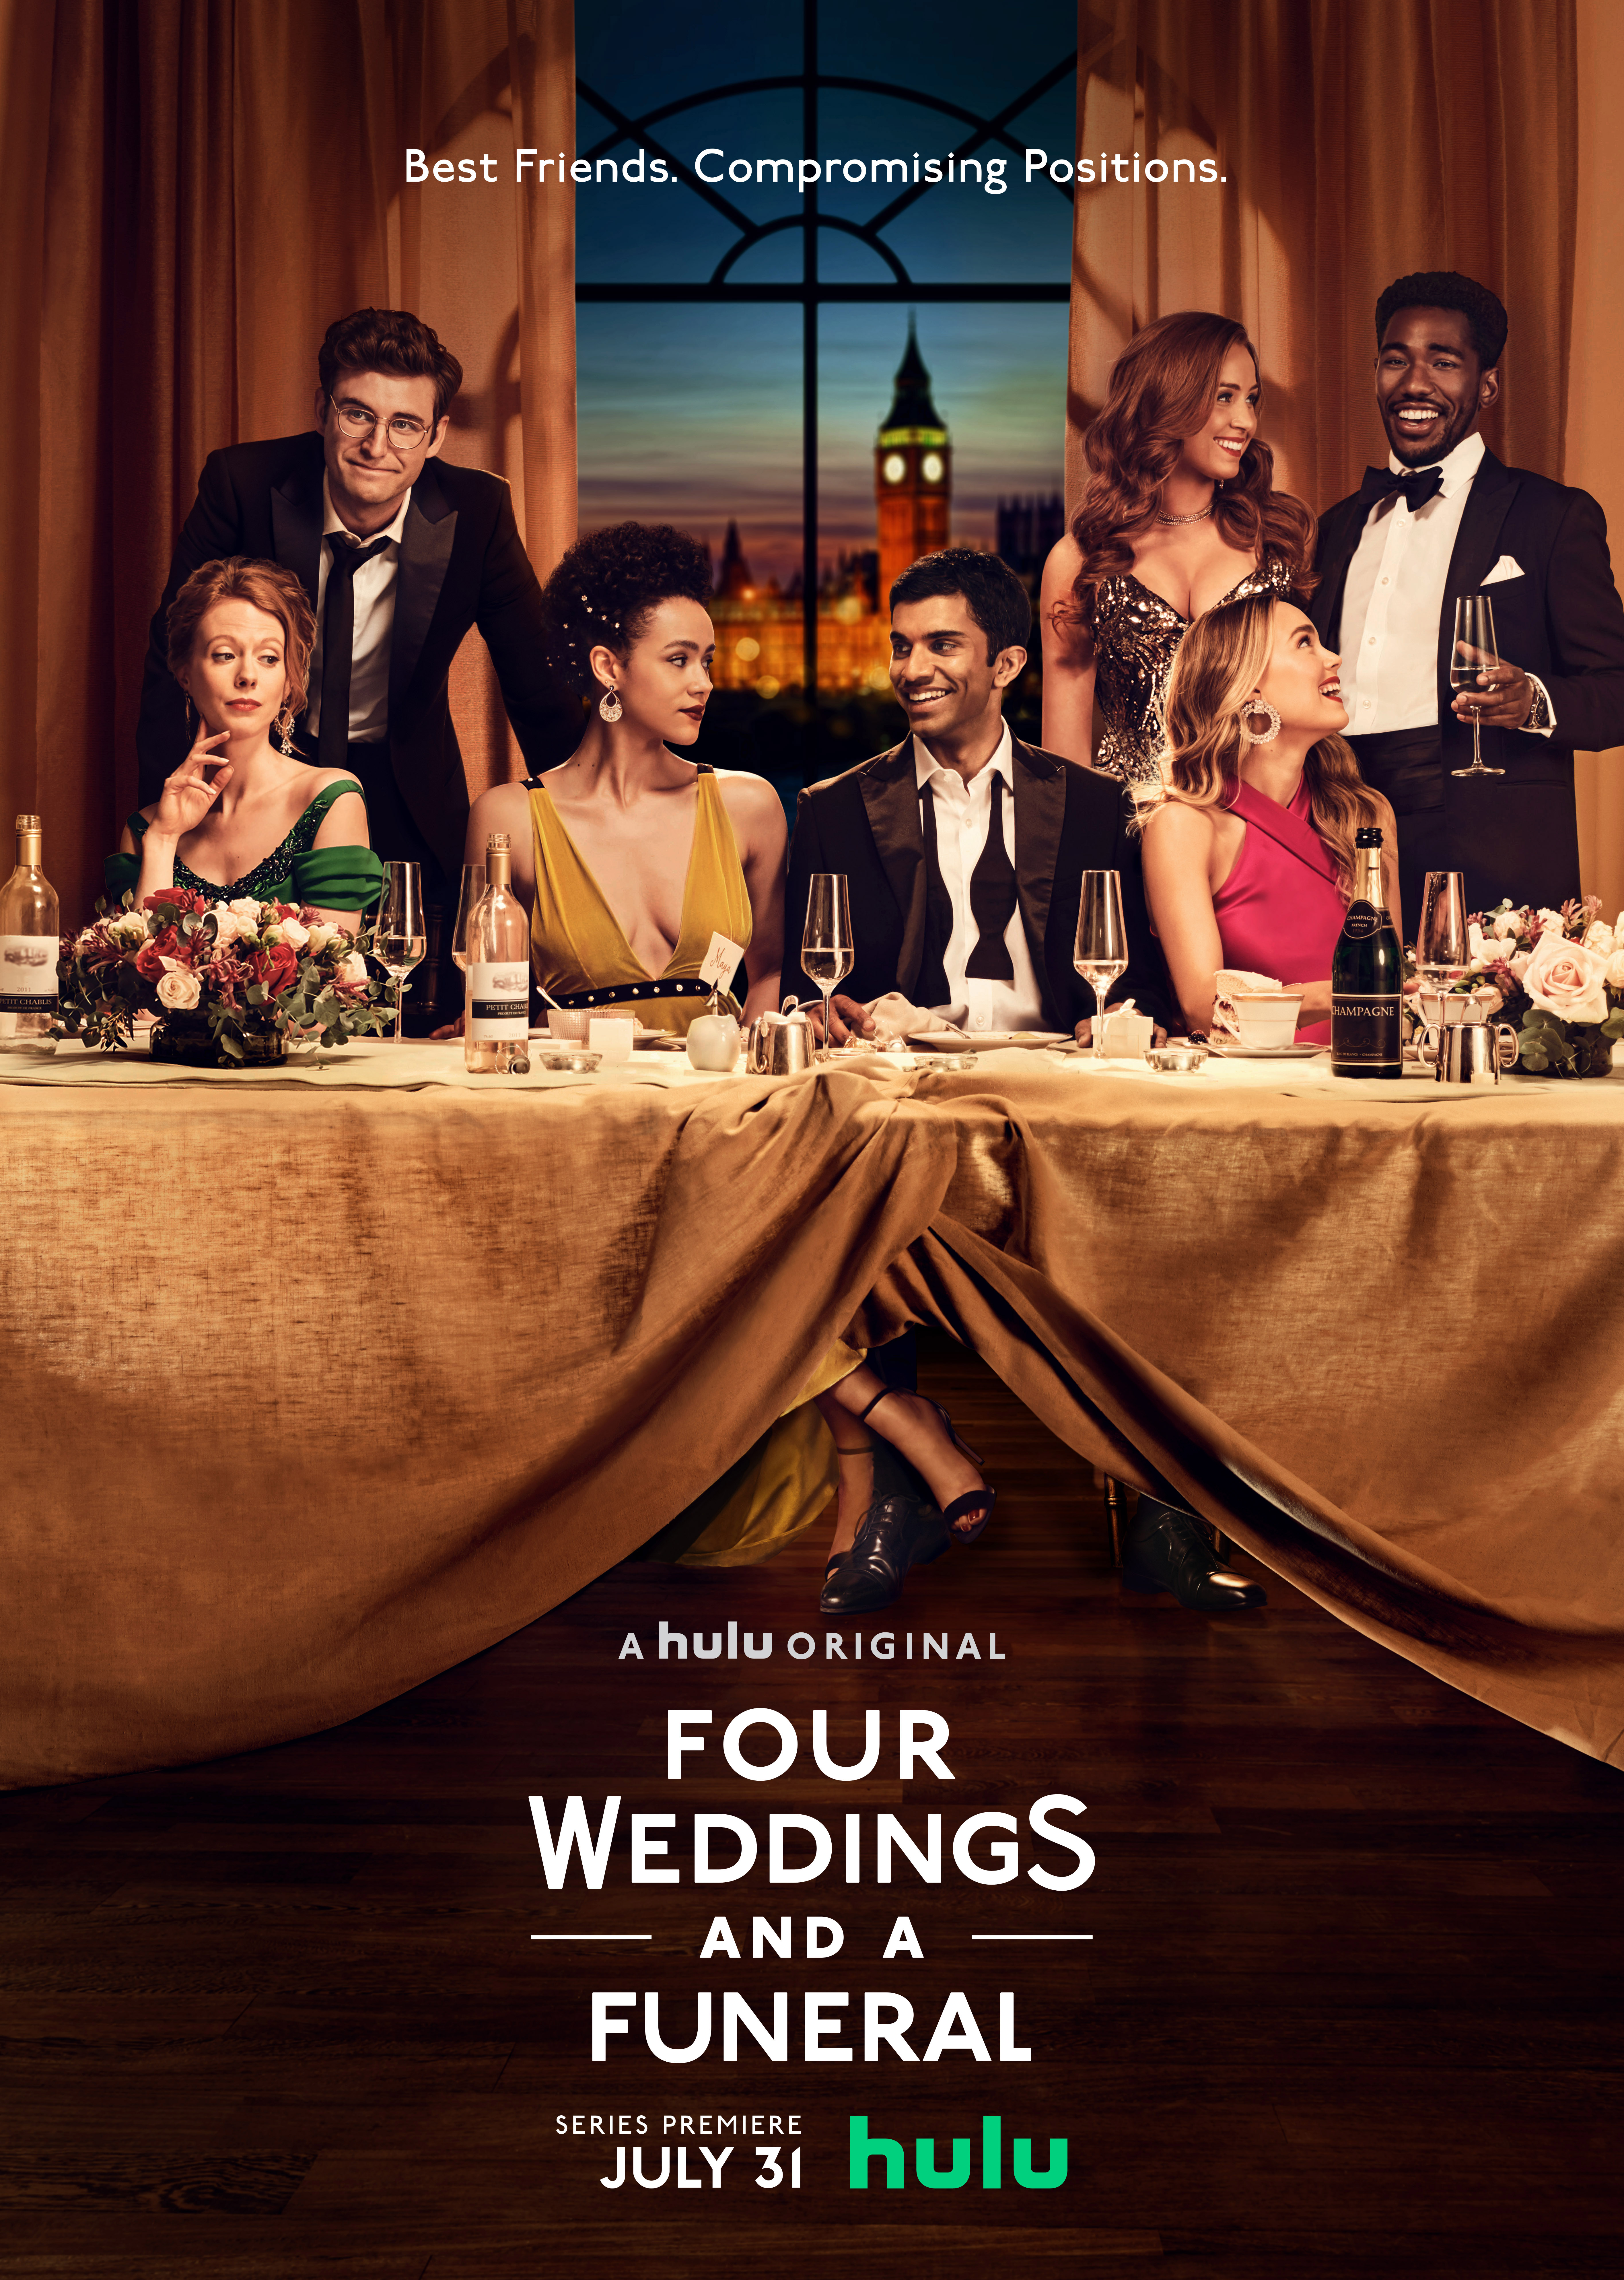 Four Weddings and a Funeral Key Art